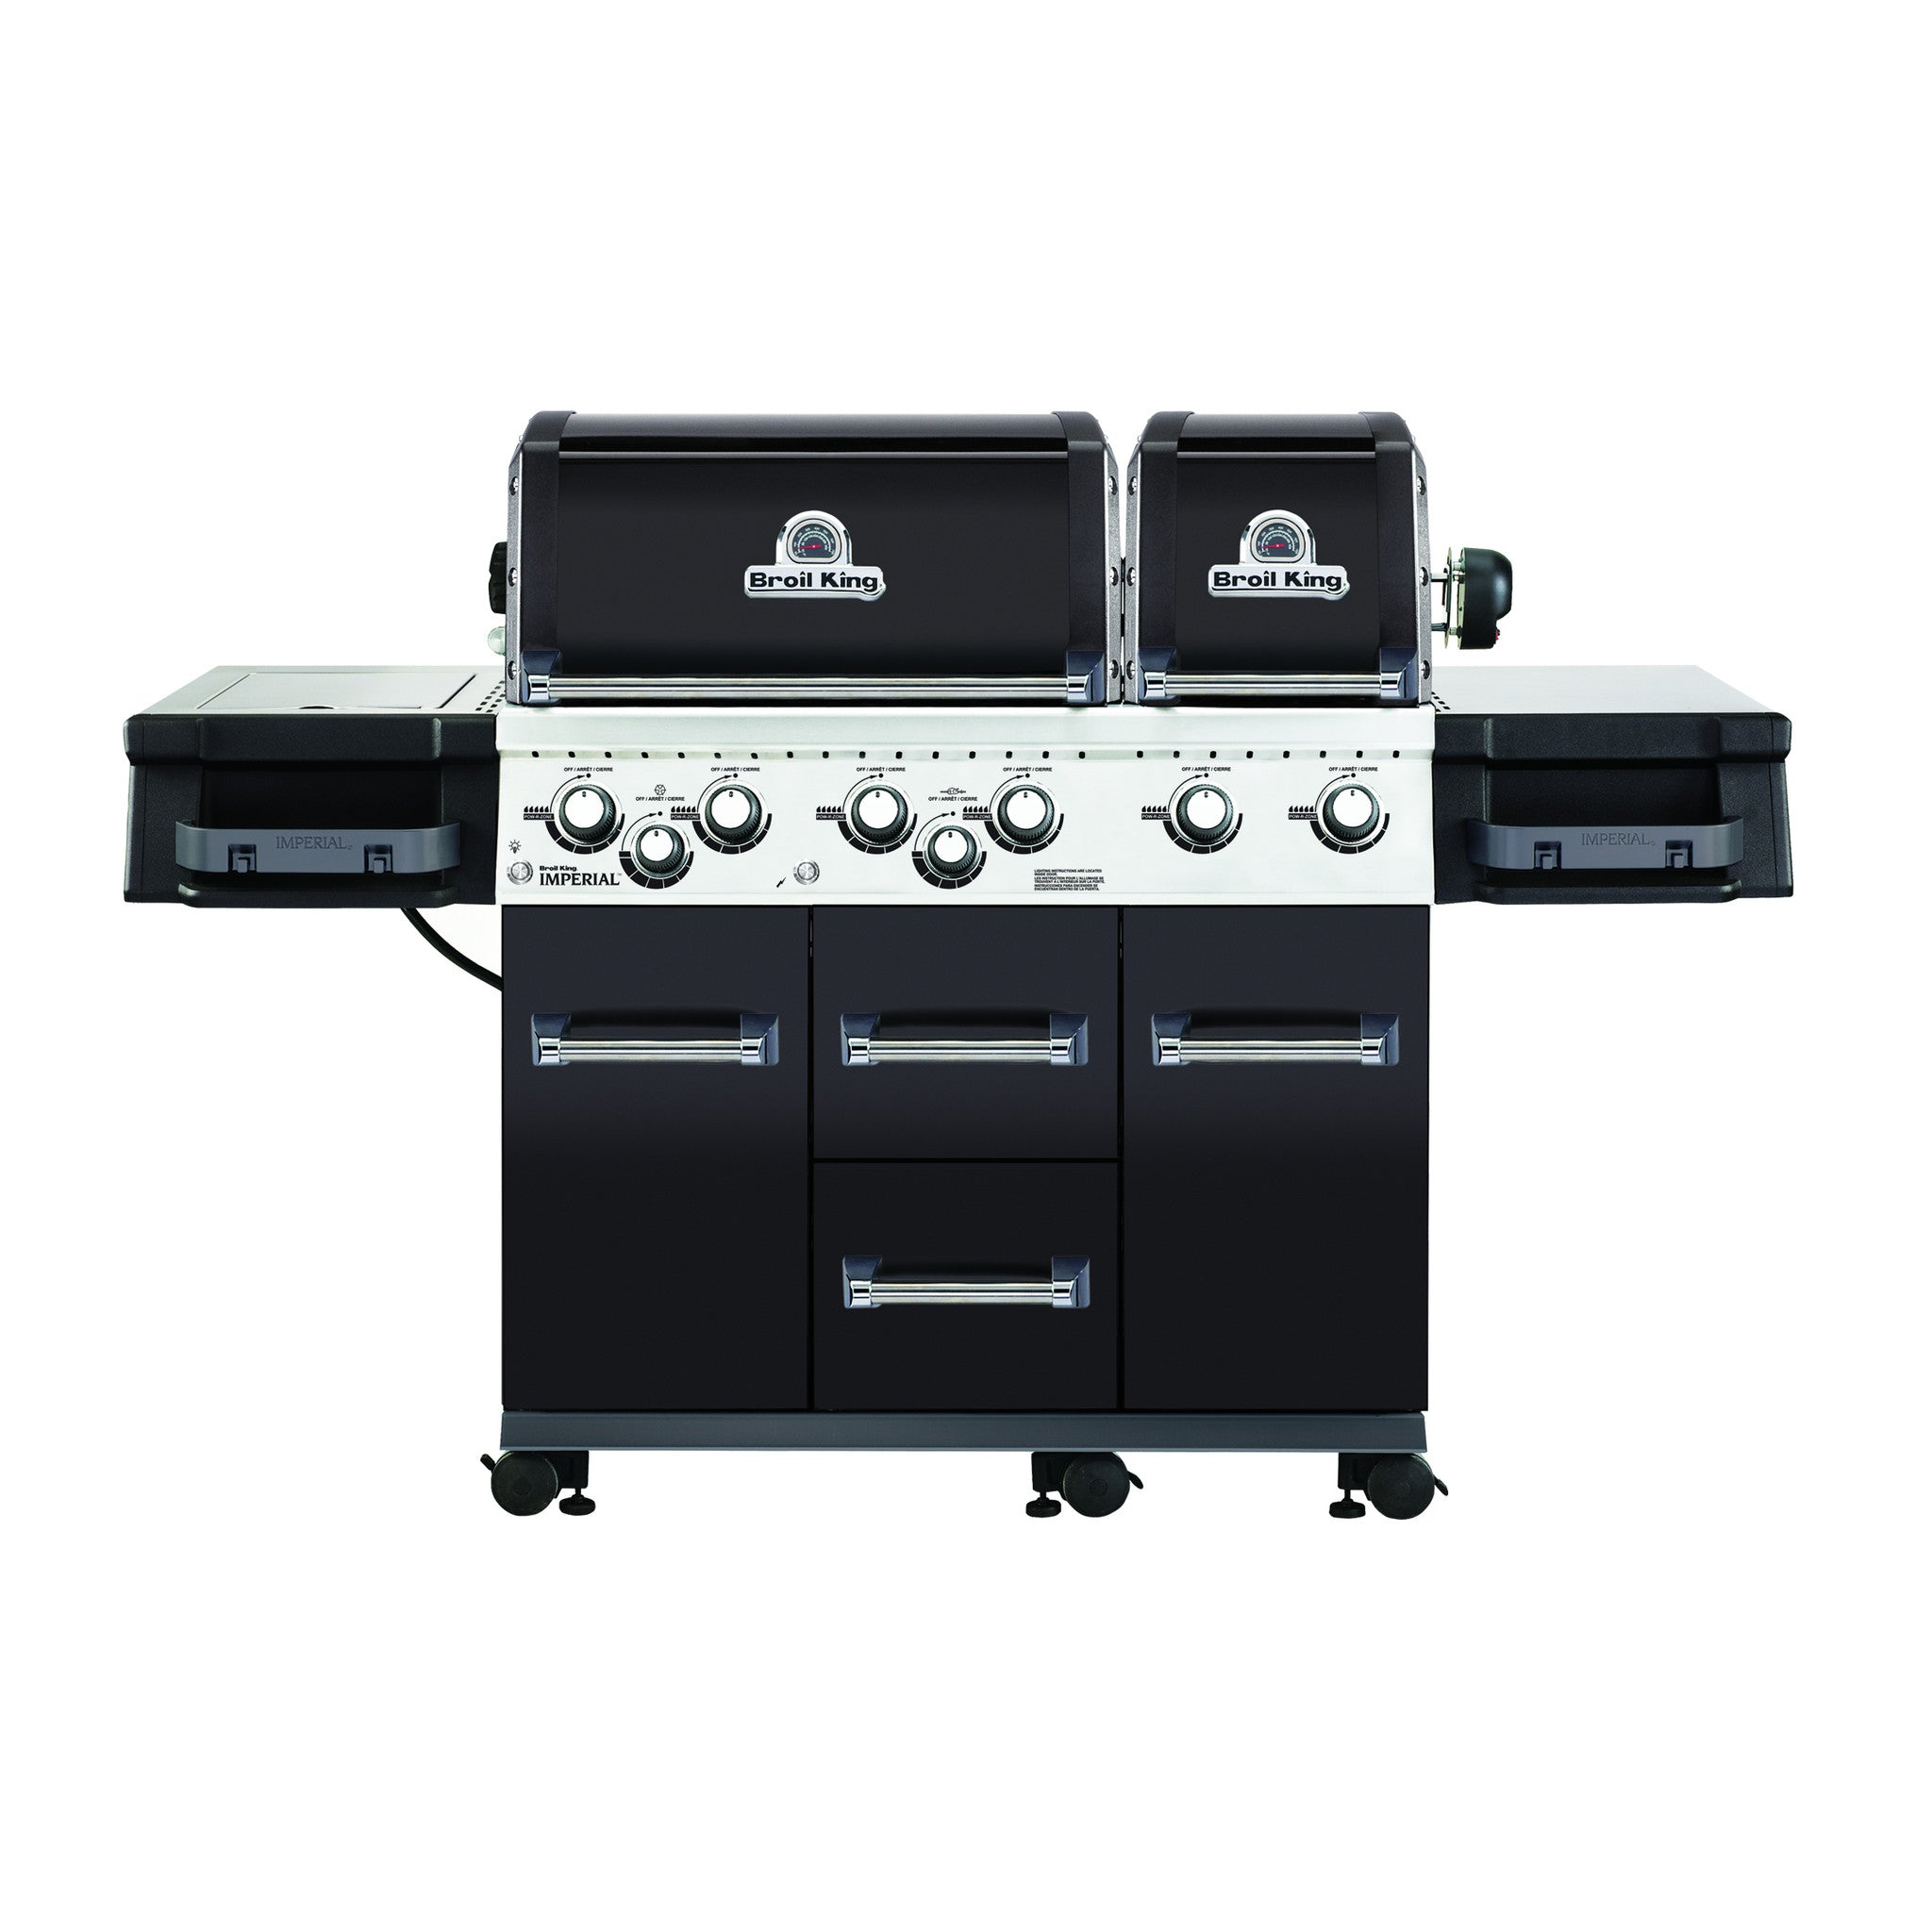 Imperial™ XLS | Broil King®